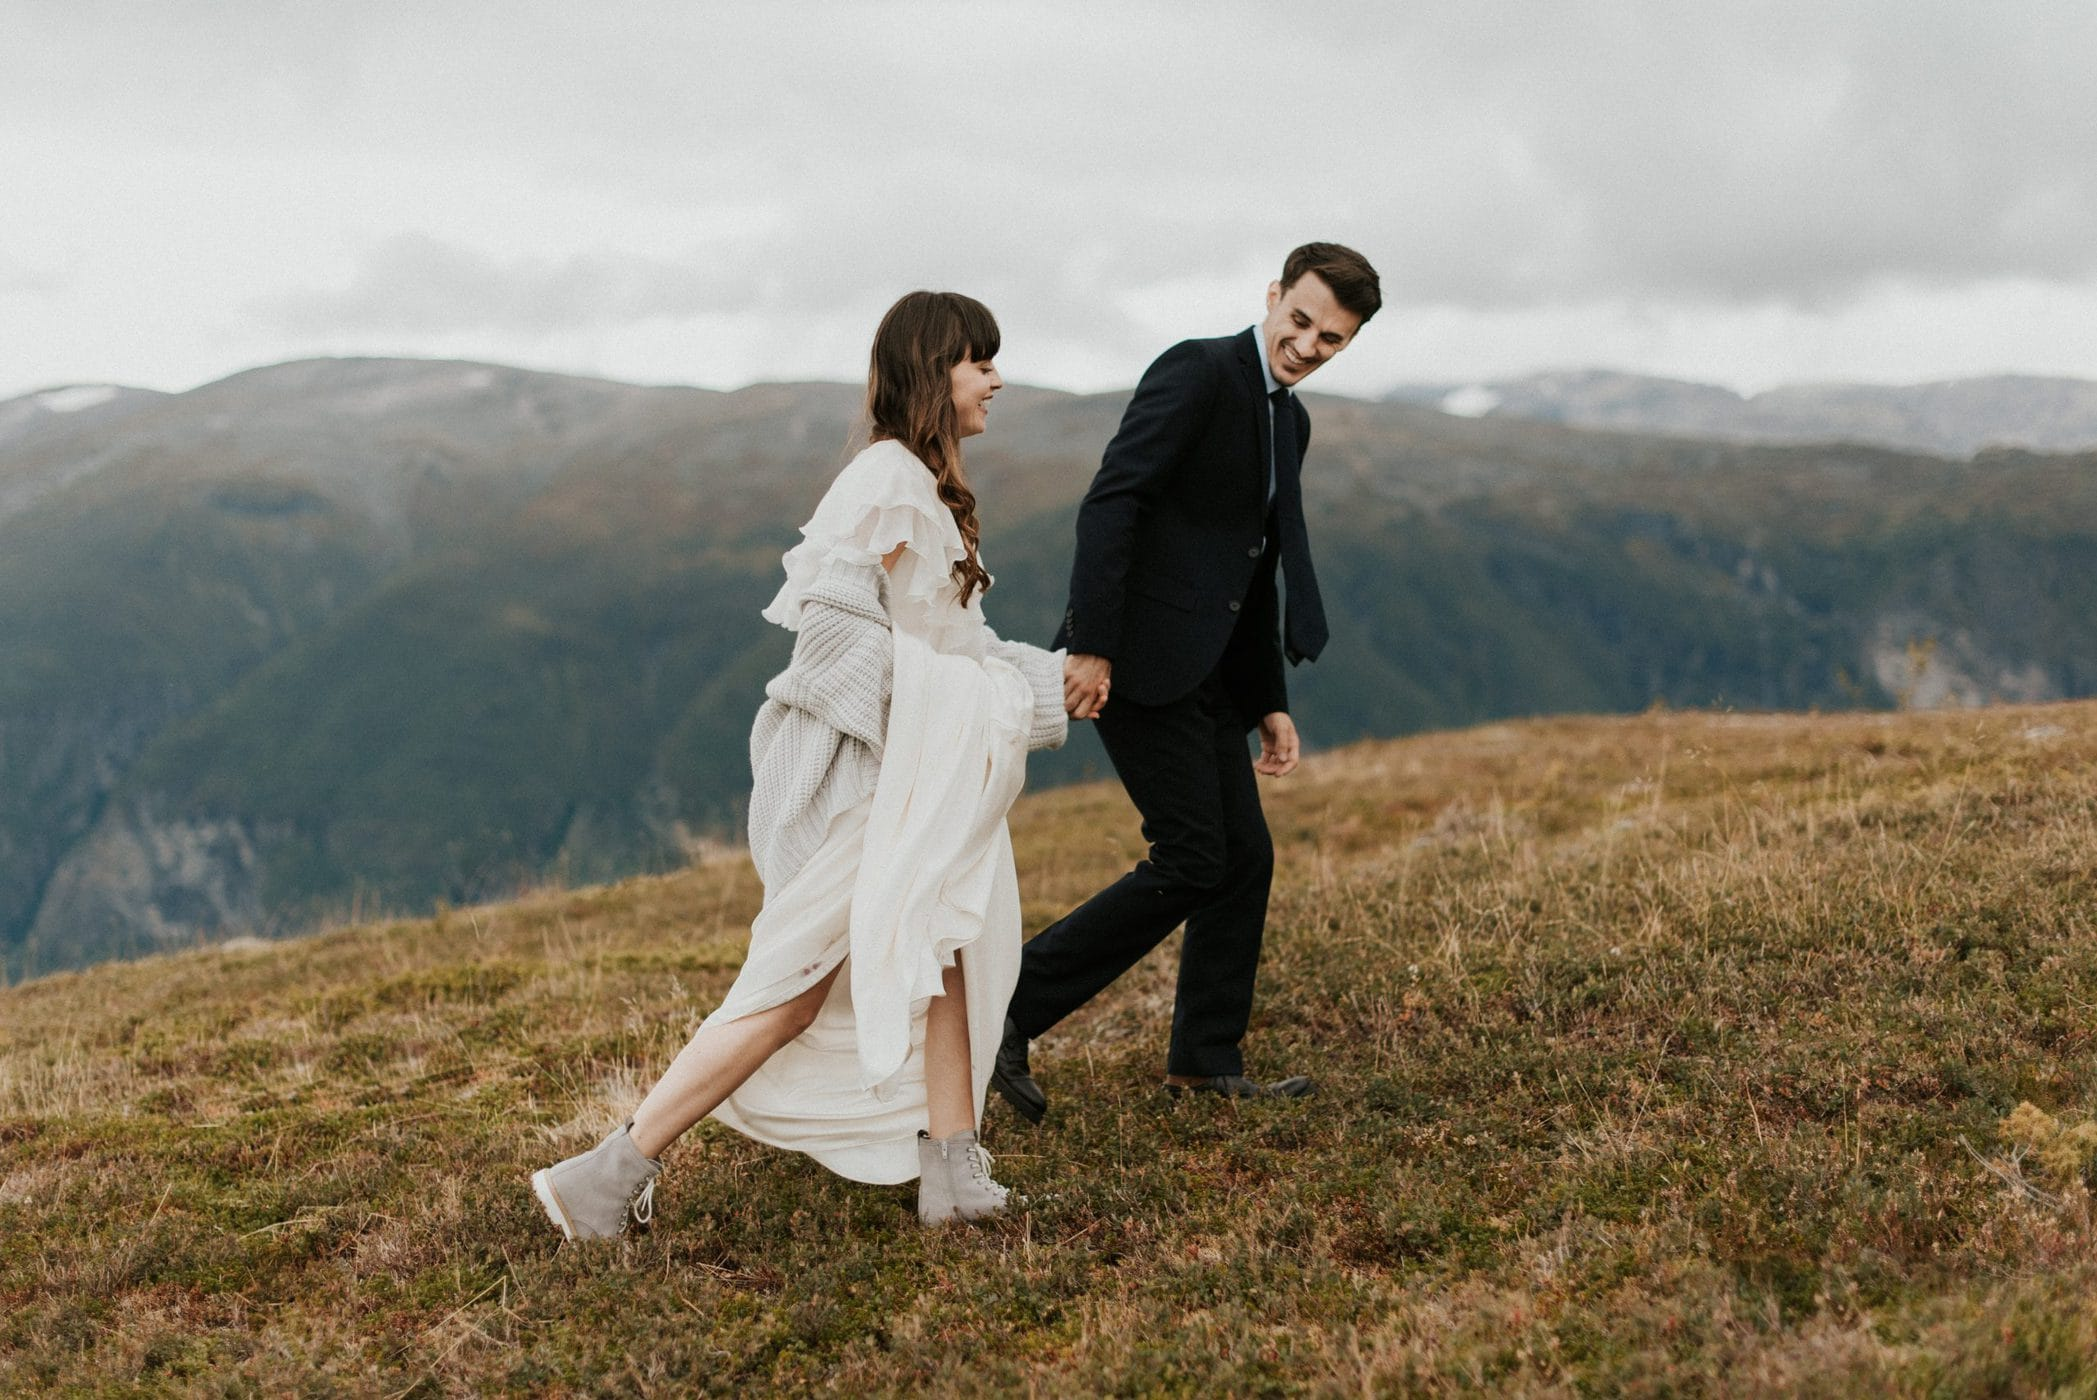 Planning an elopement